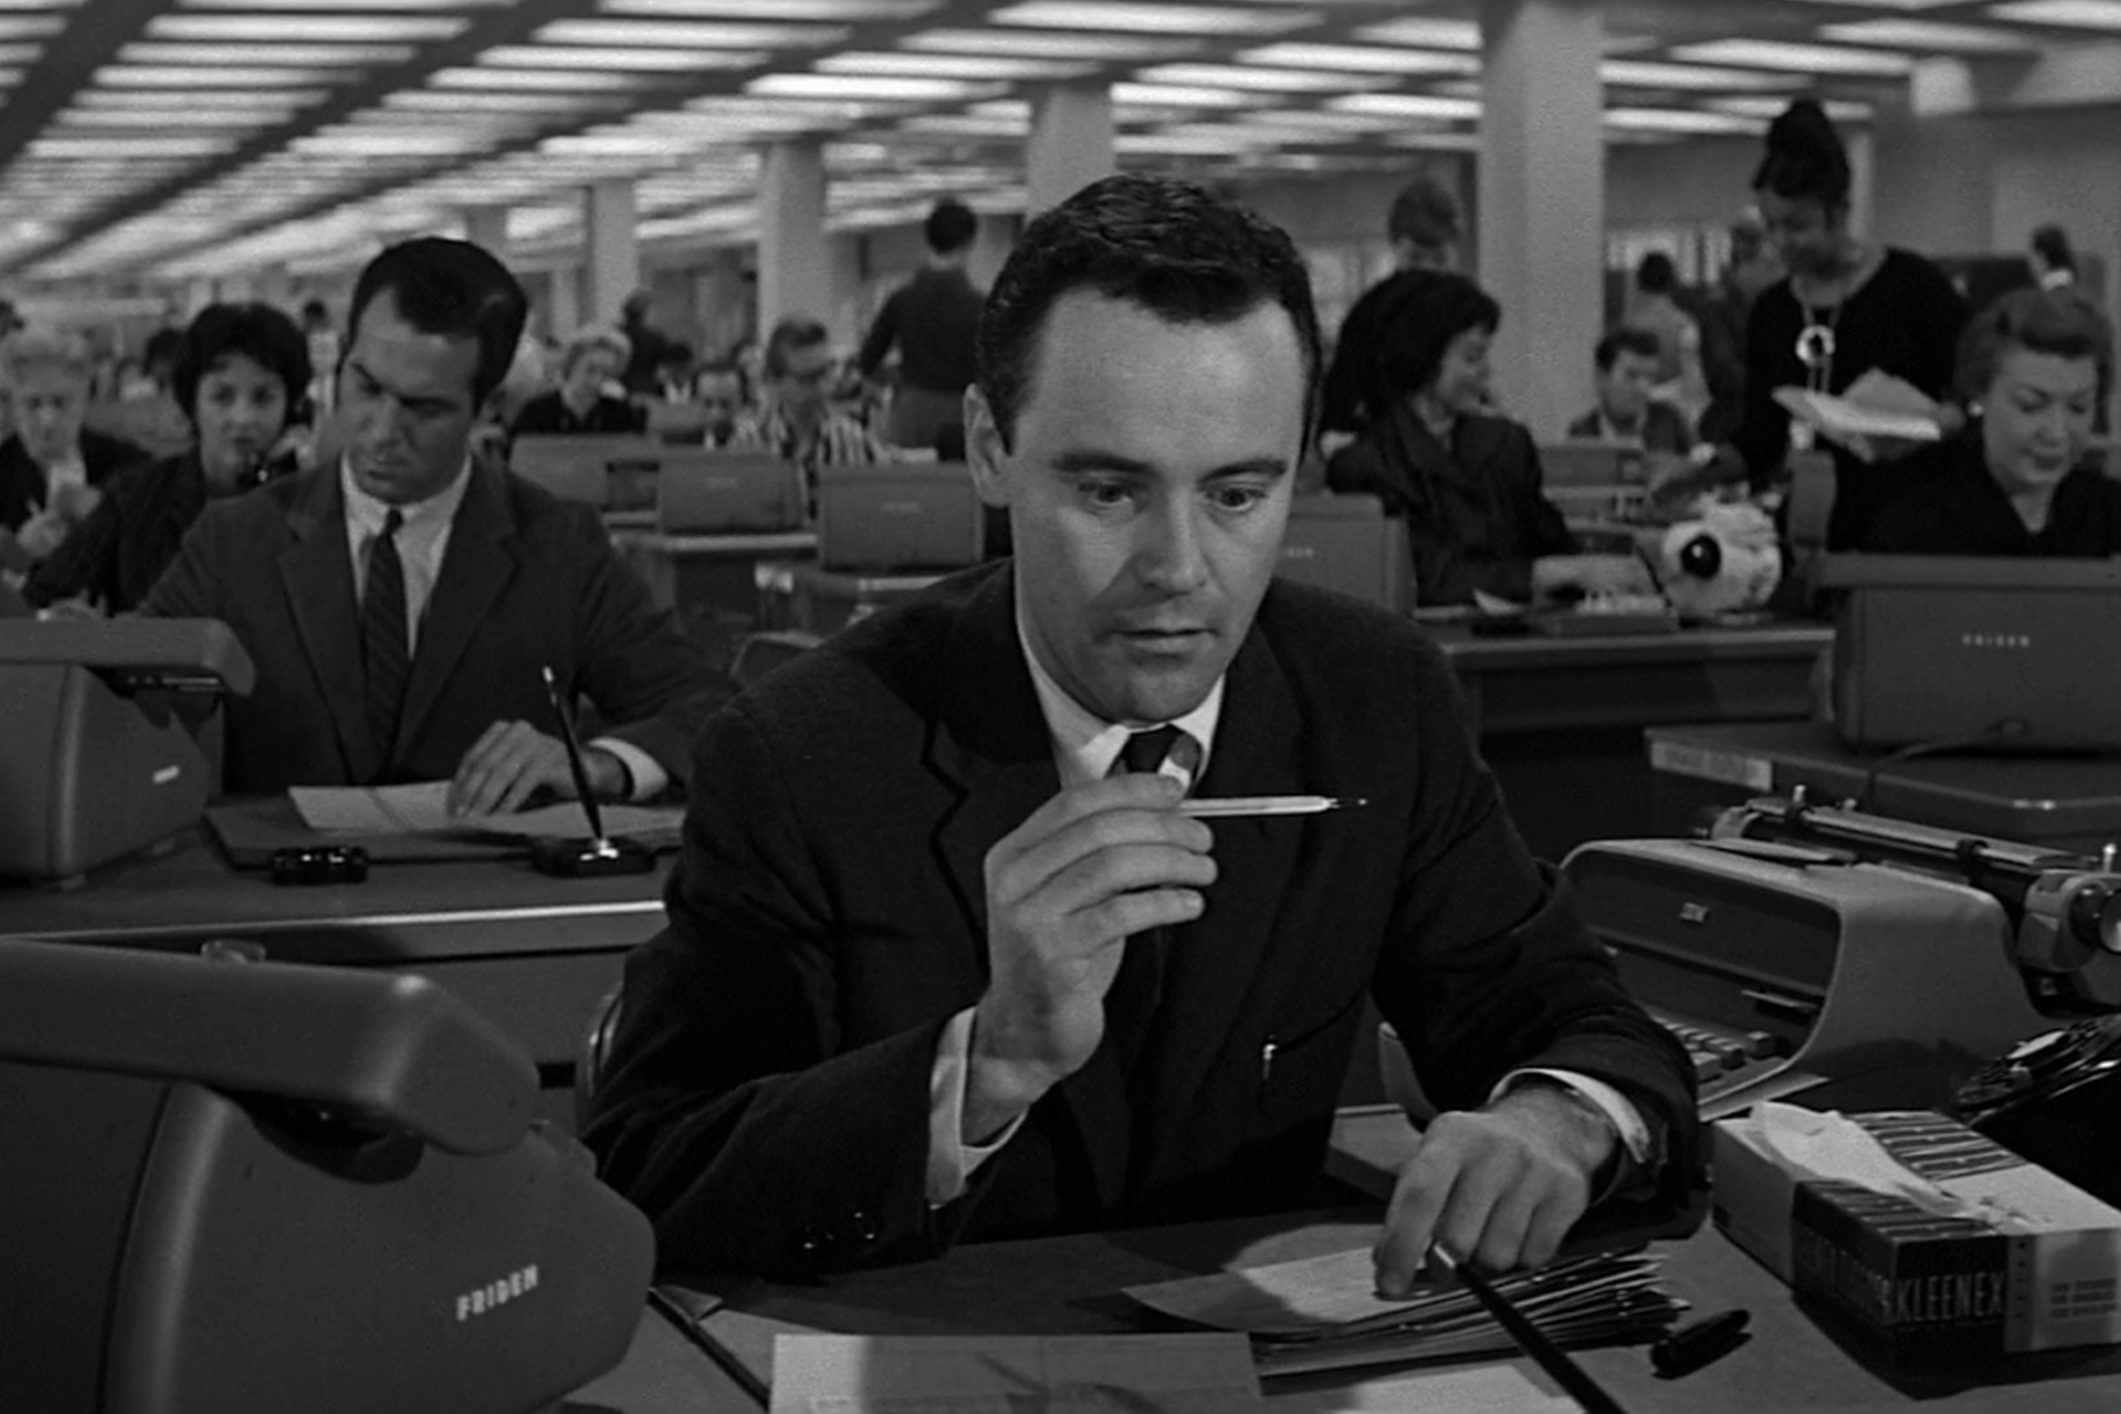 El Apartamento, de Billy Wilder. (Jack Lemmon)